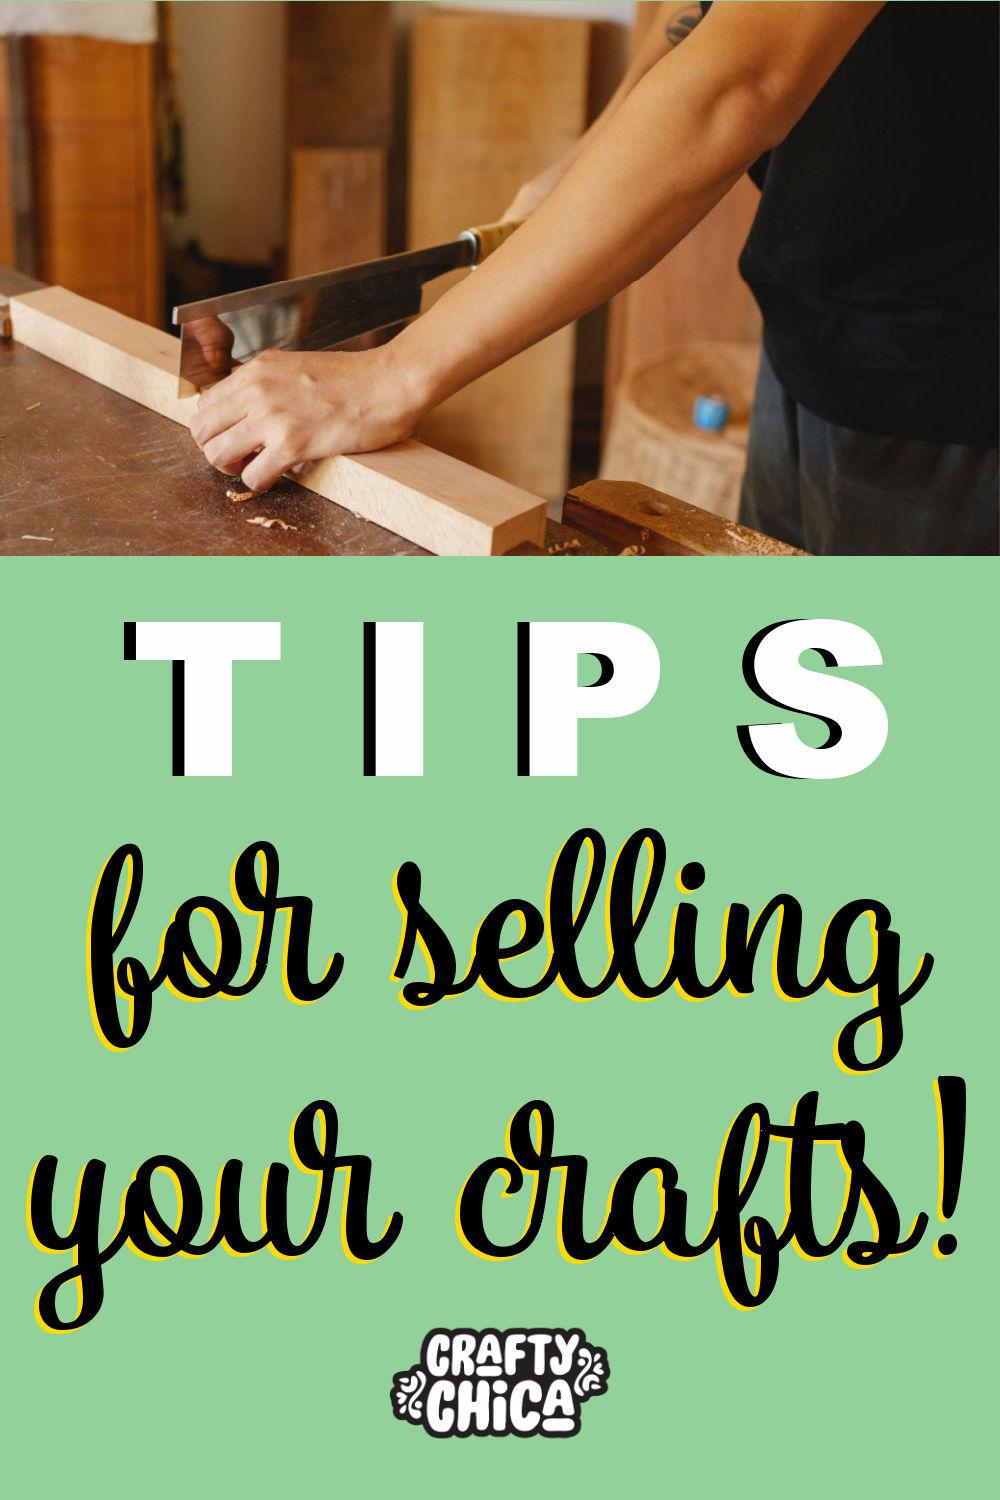 Tips for selling your crafts